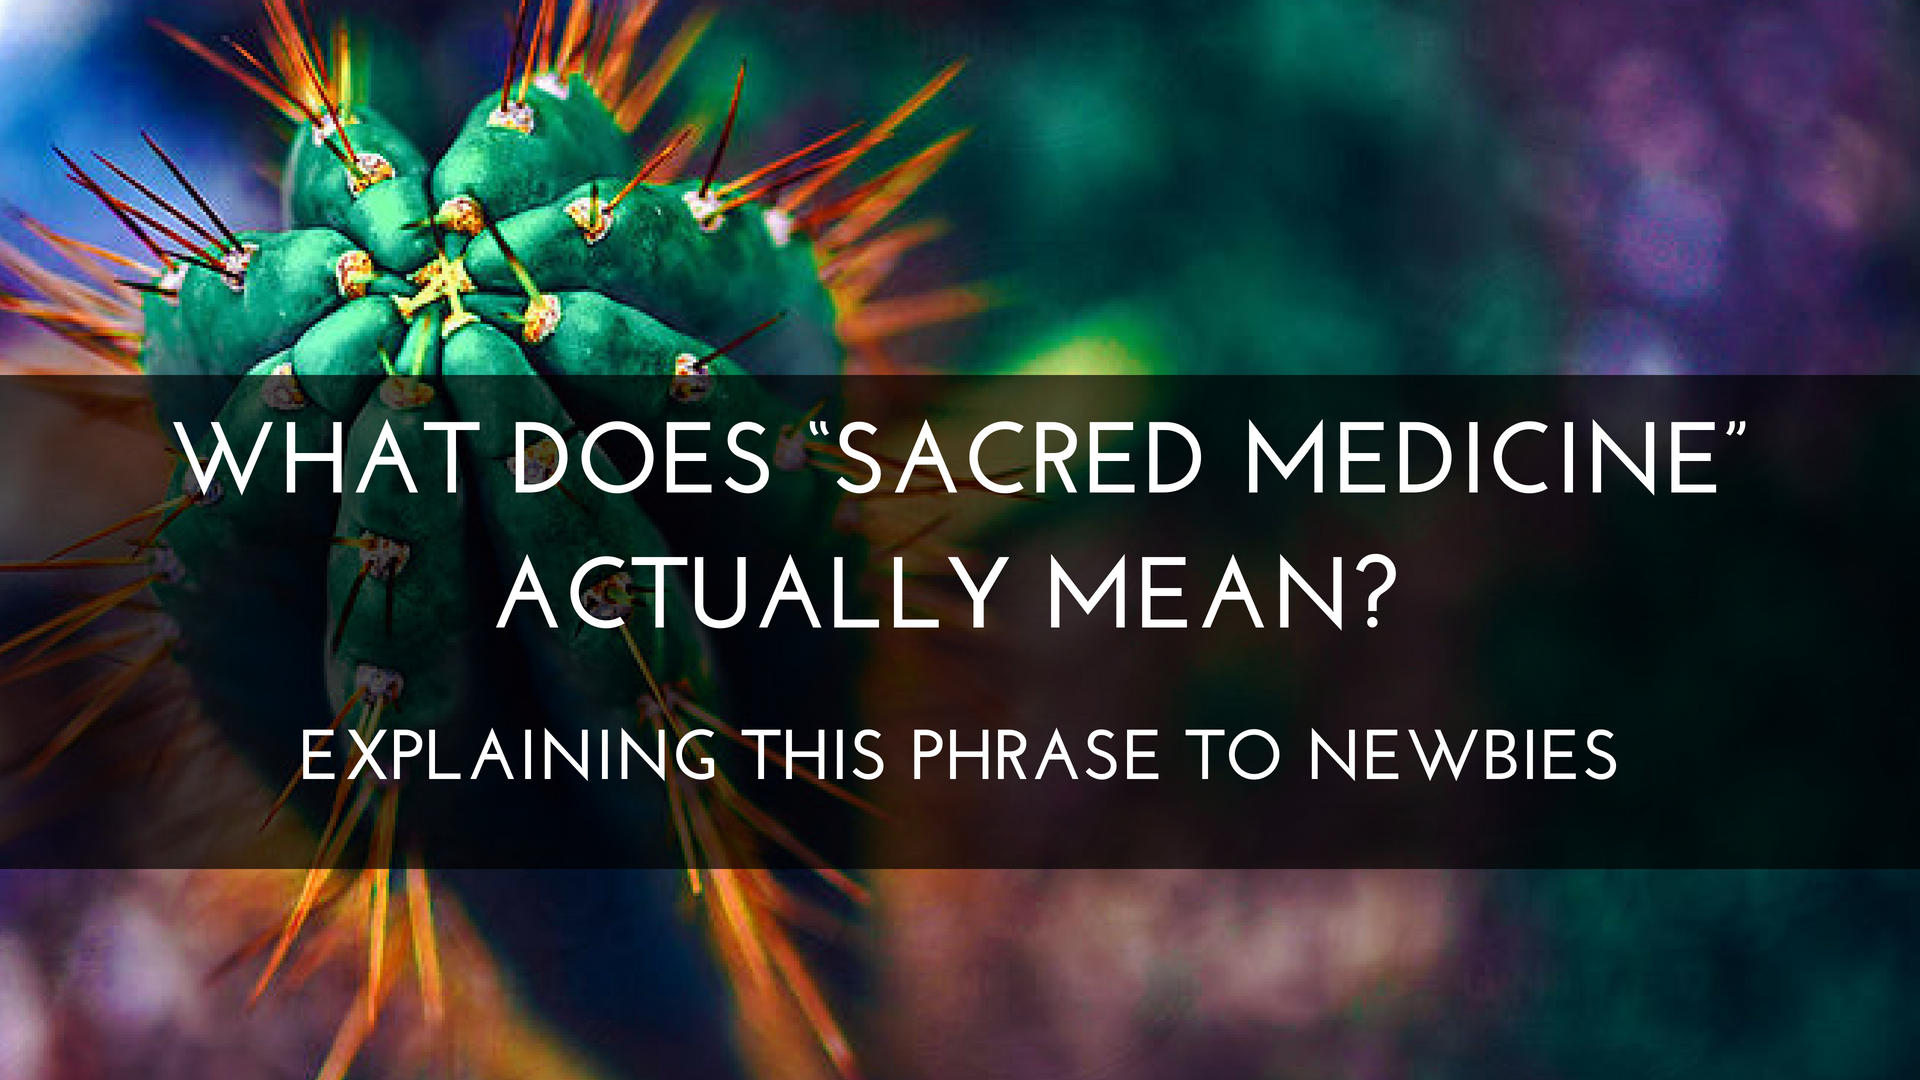 """WHAT DOES """"SACRED MEDICINE"""" ACTUALLY MEAN? EXPLAINING THIS PHRASE TO NEWBIES"""